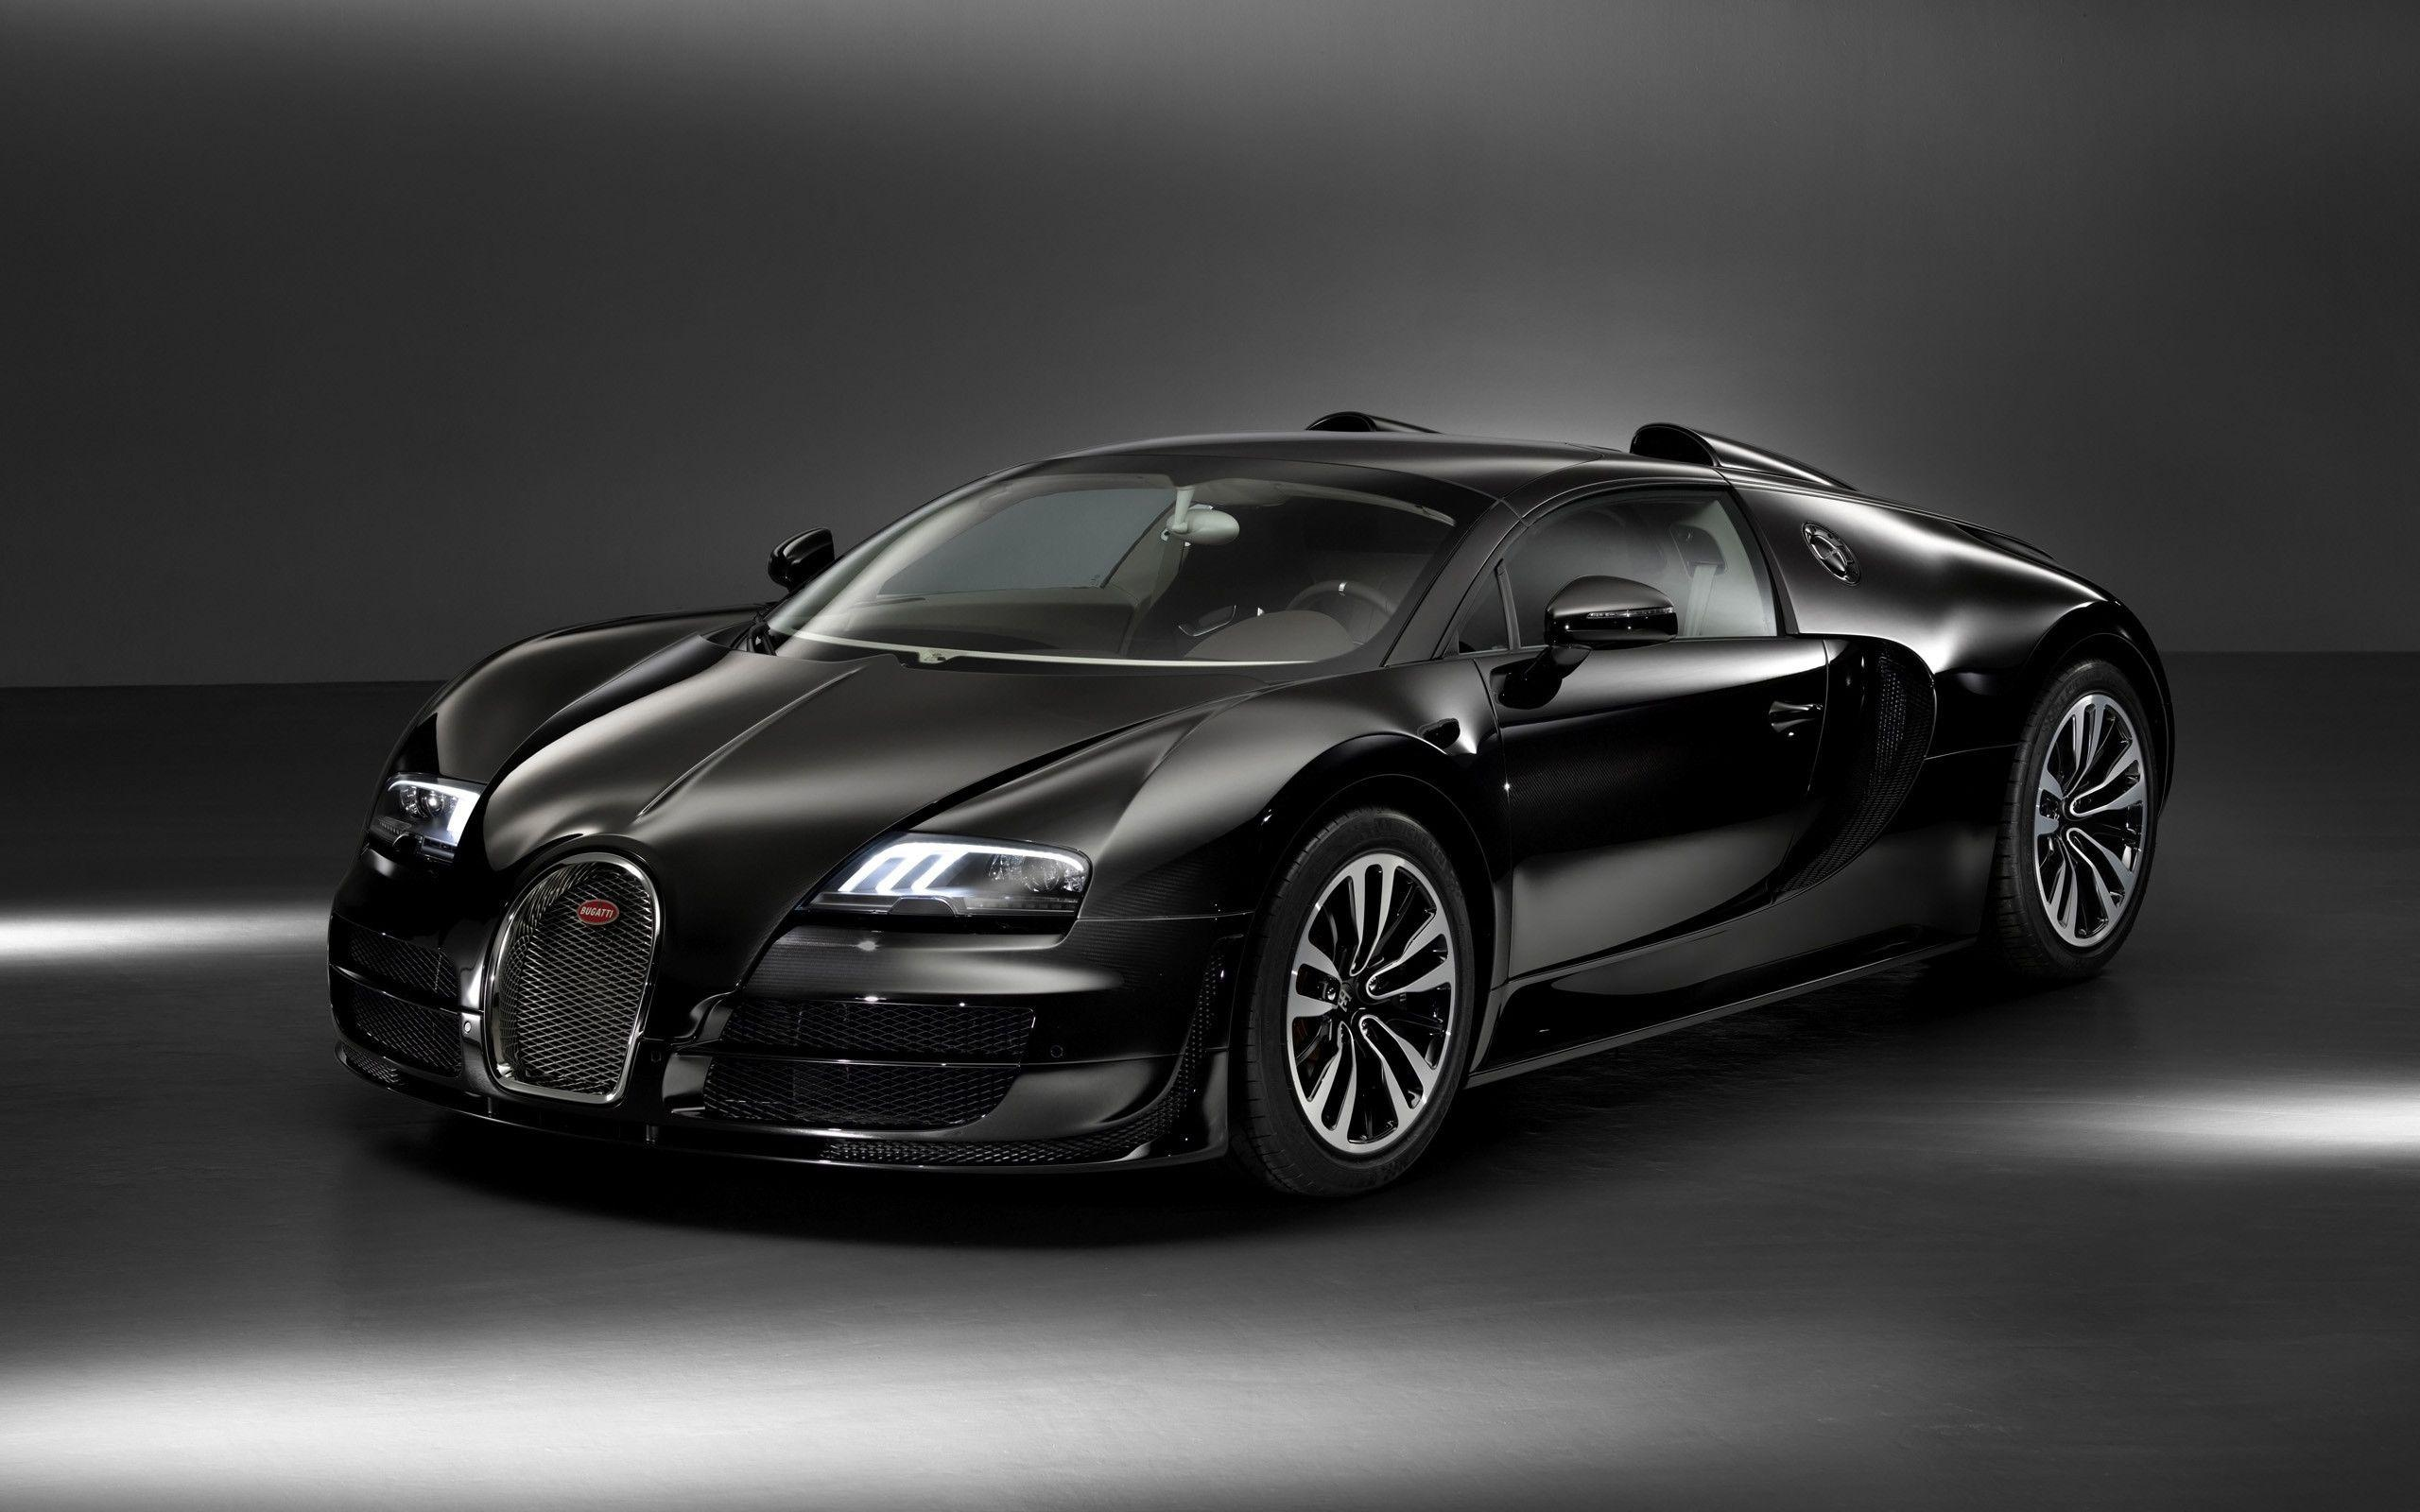 Wallpaper Bugatti Veyron Grand Sport: Bugatti Veyron HD Wallpapers